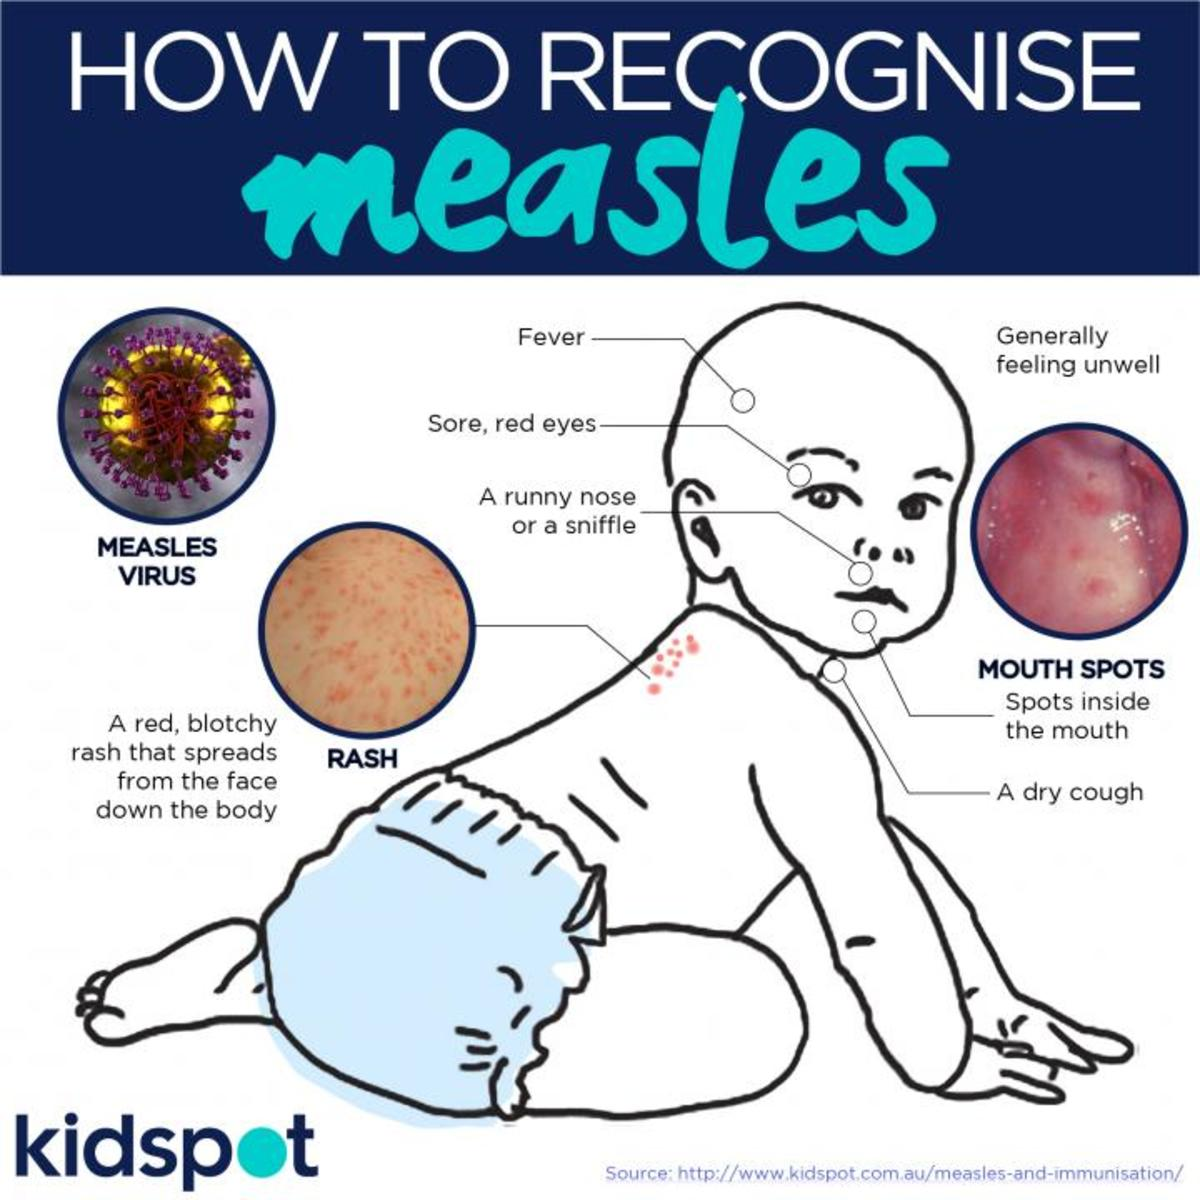 A quick guide to the symptoms of measles.